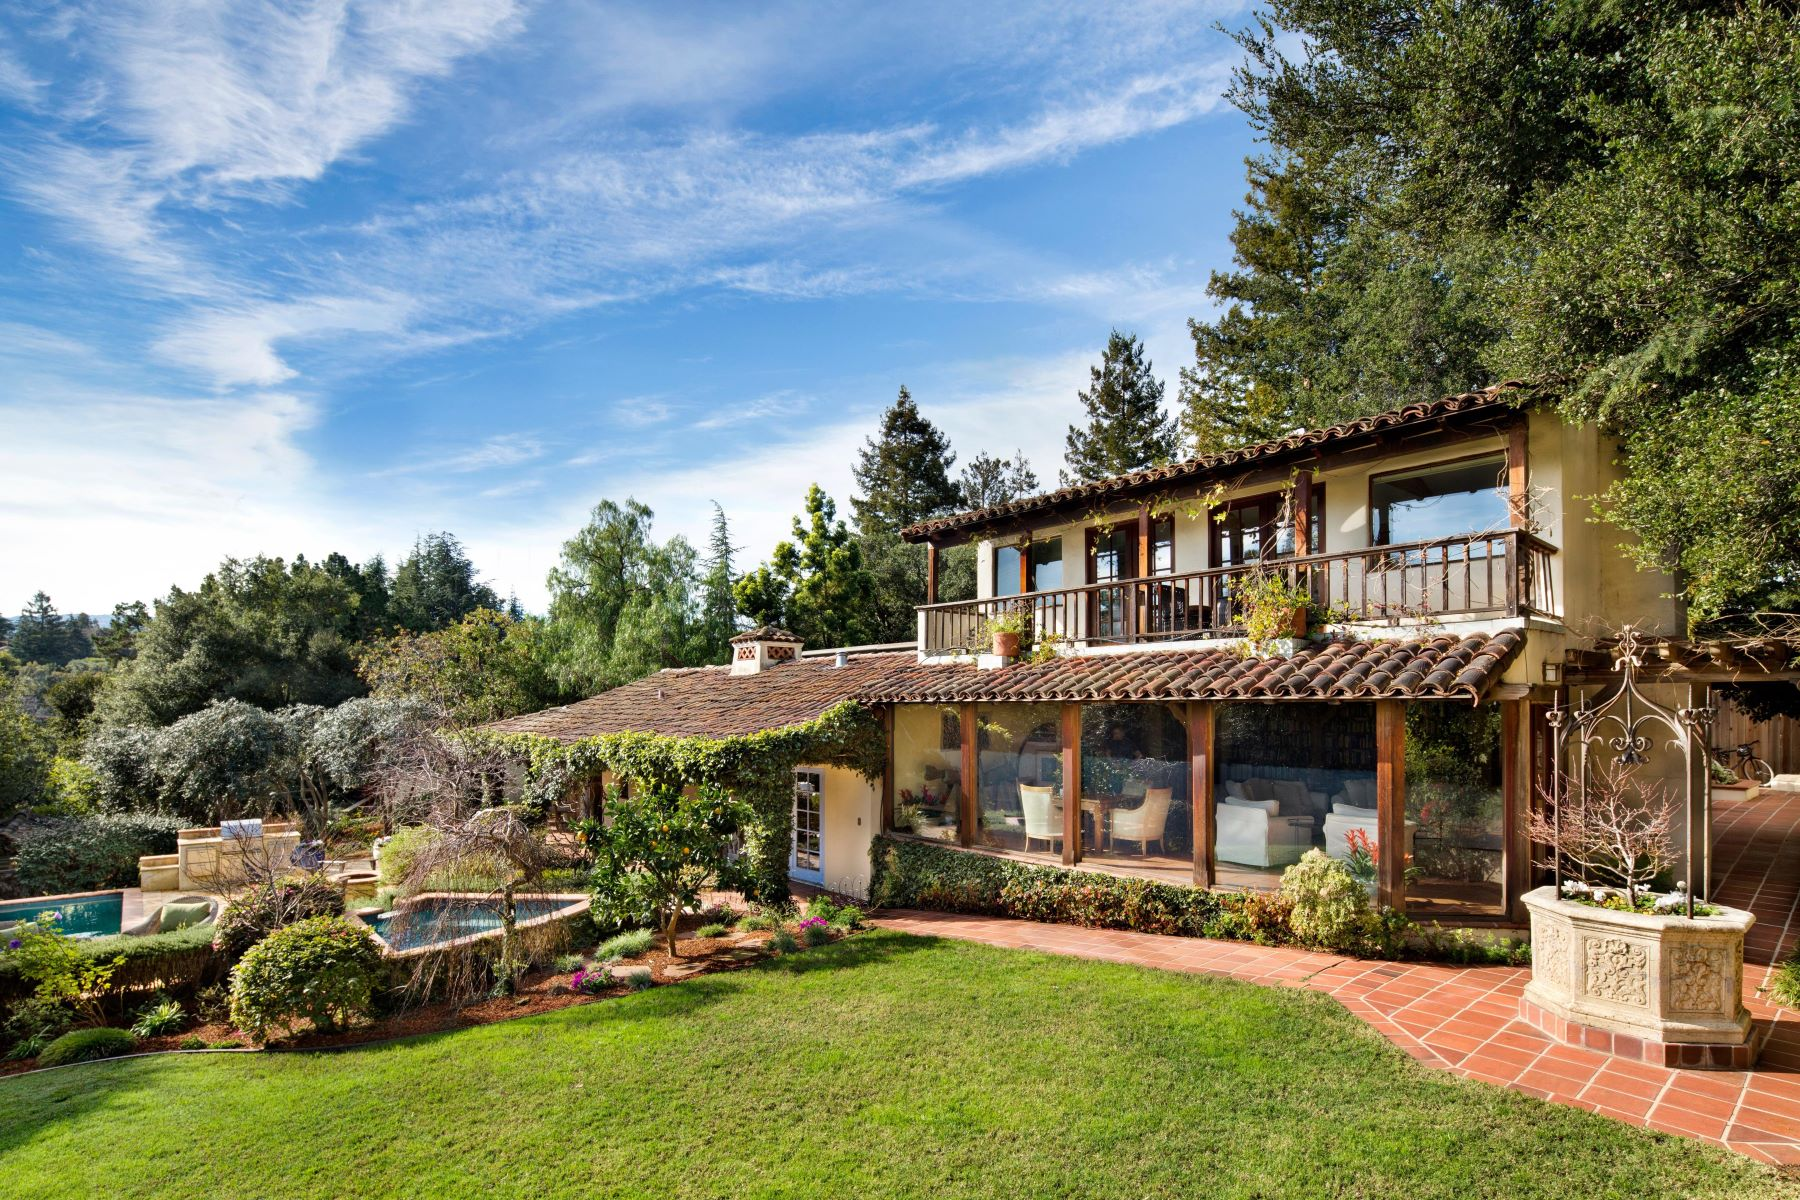 Single Family Home for Sale at 14700 Manuella Rd Los Altos Hills, California 94022 United States